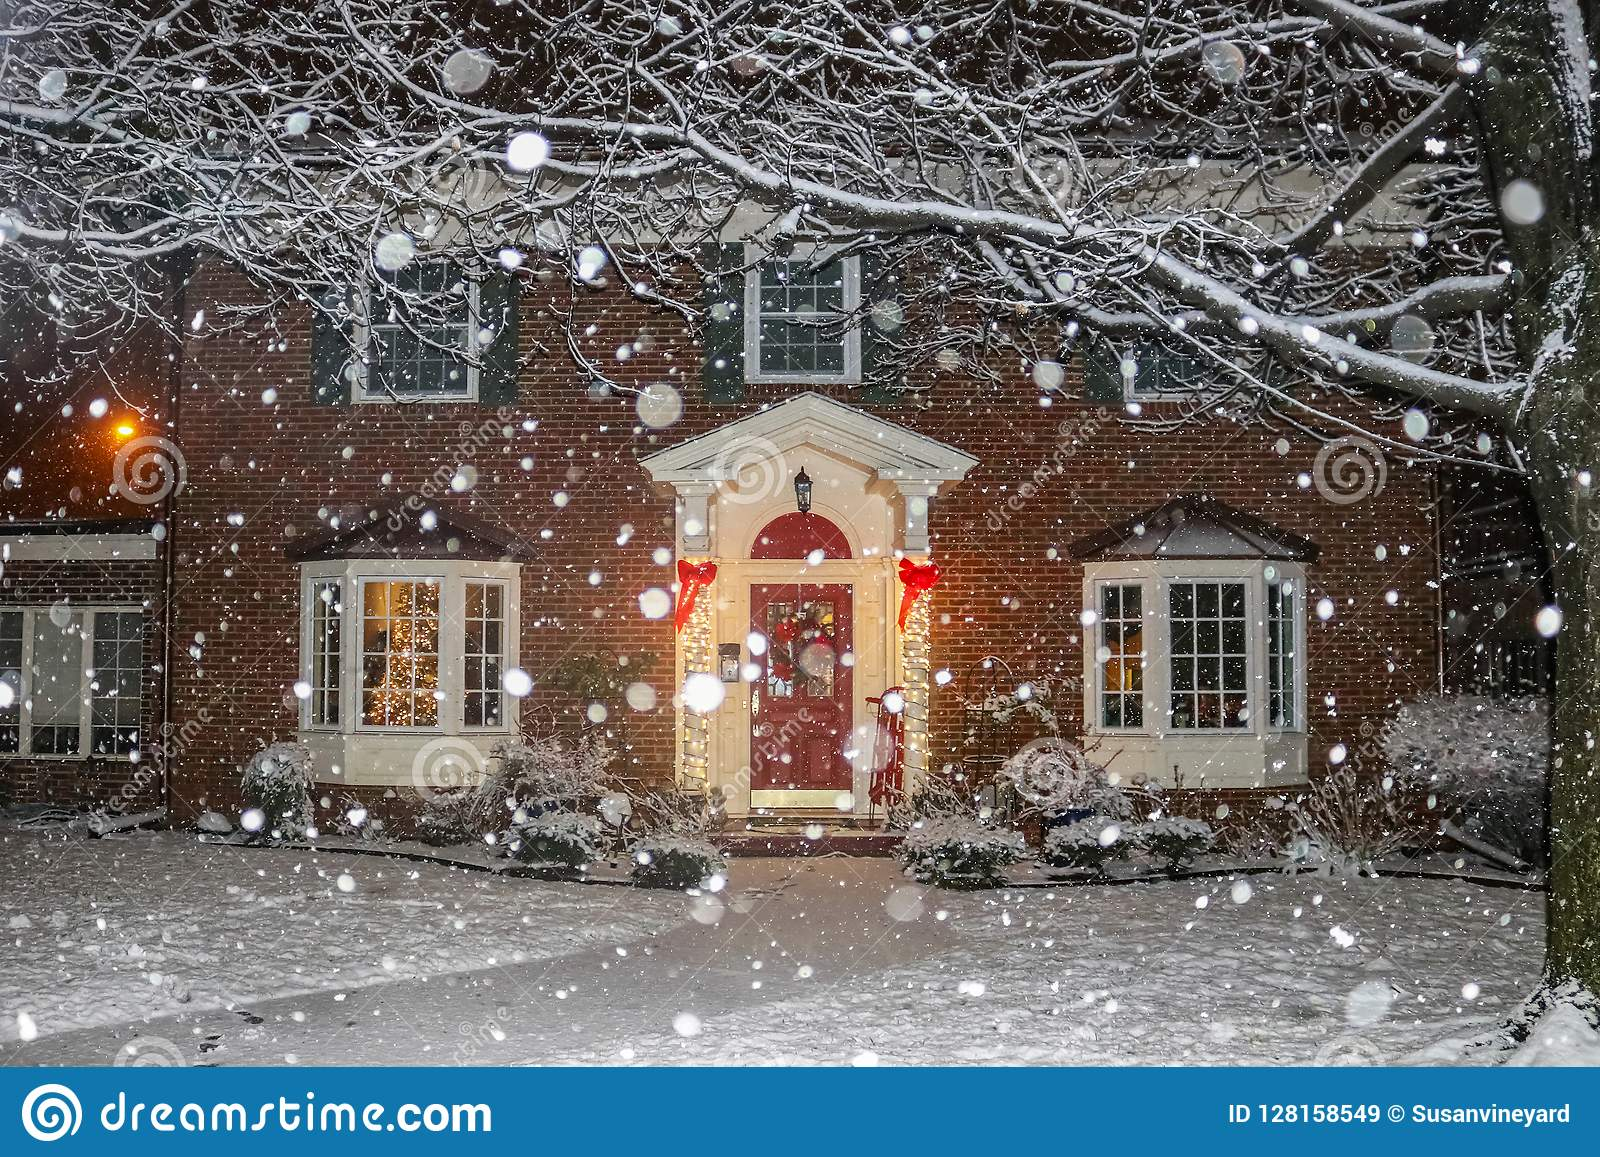 Snowfall On Beautiful Brick House With Columns And Bay Windows With ...